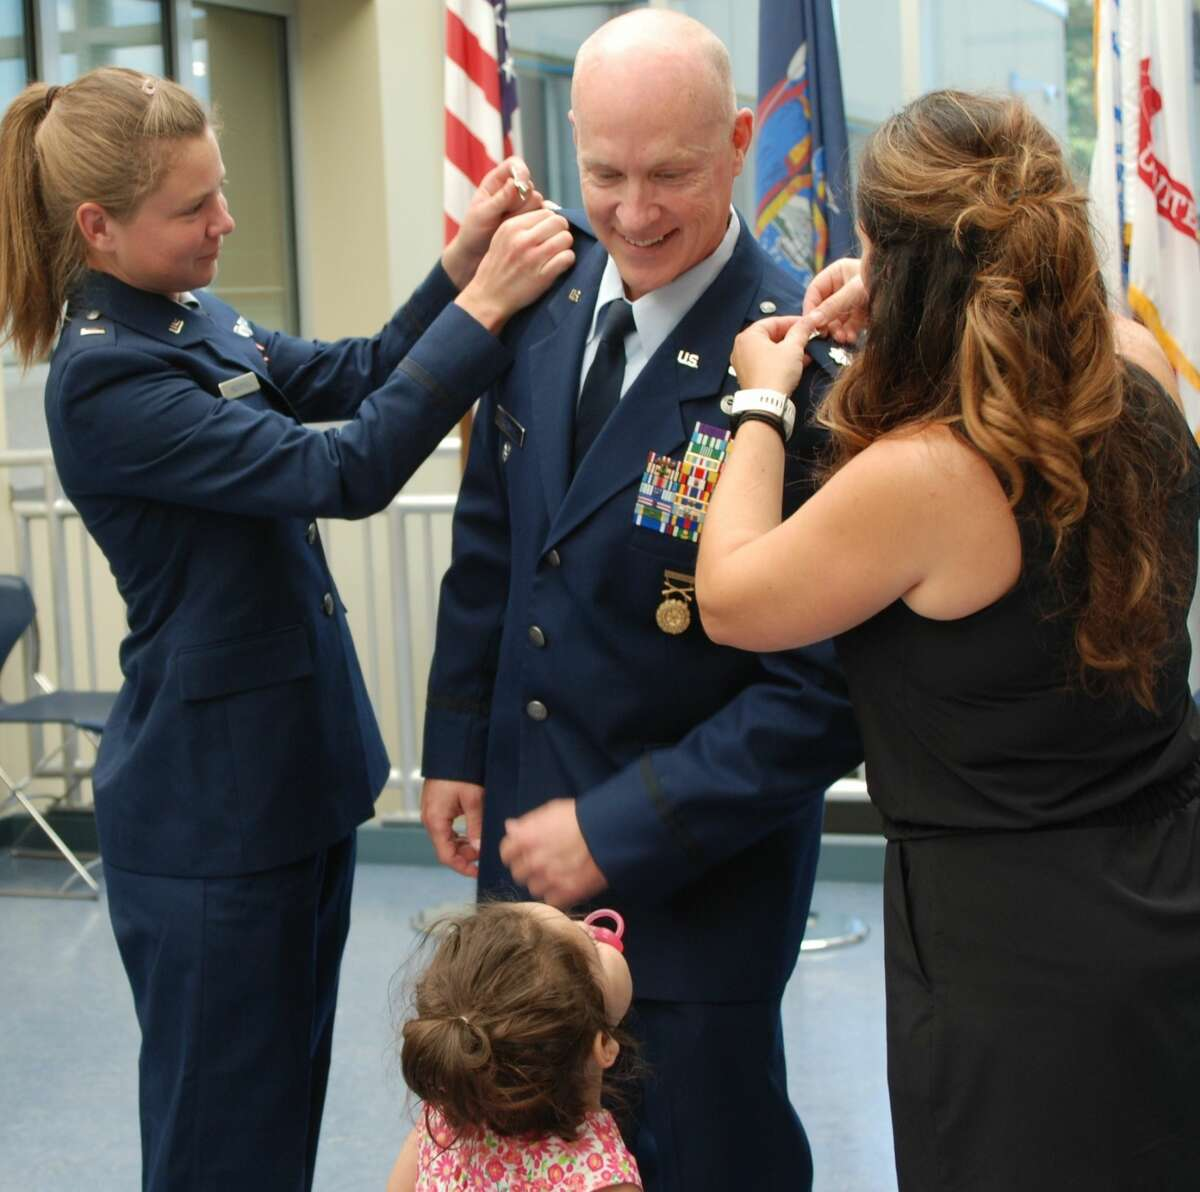 Niece Air Force 1st Lt. Amanda Underhill and fiancée Janelle Fayette pin colonel rank insignias on Eric Underhill during a ceremony in Latham.